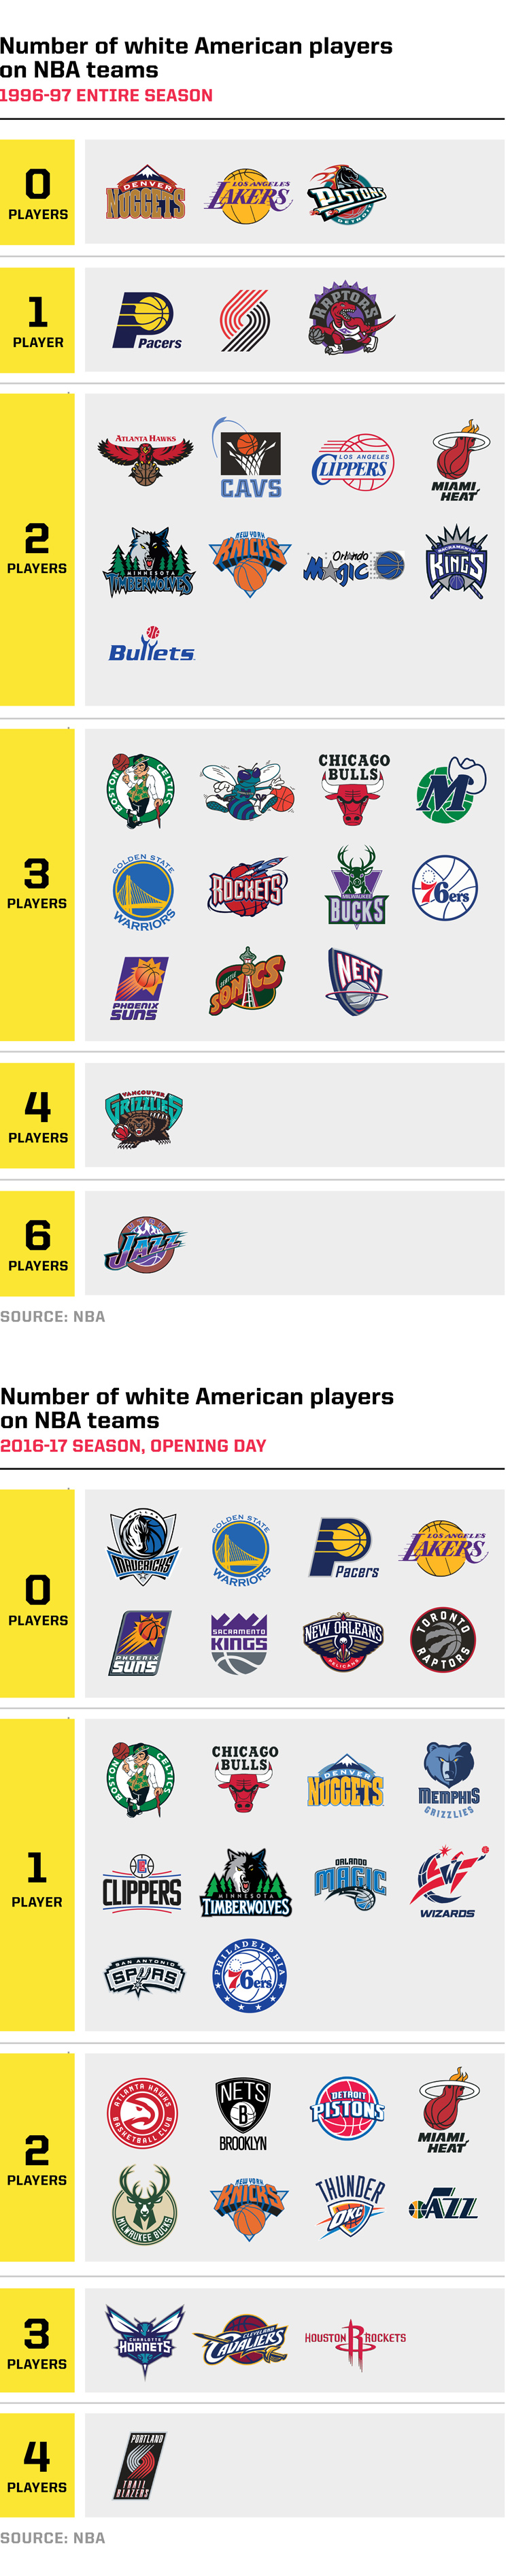 Where Are All The White American Nba Players